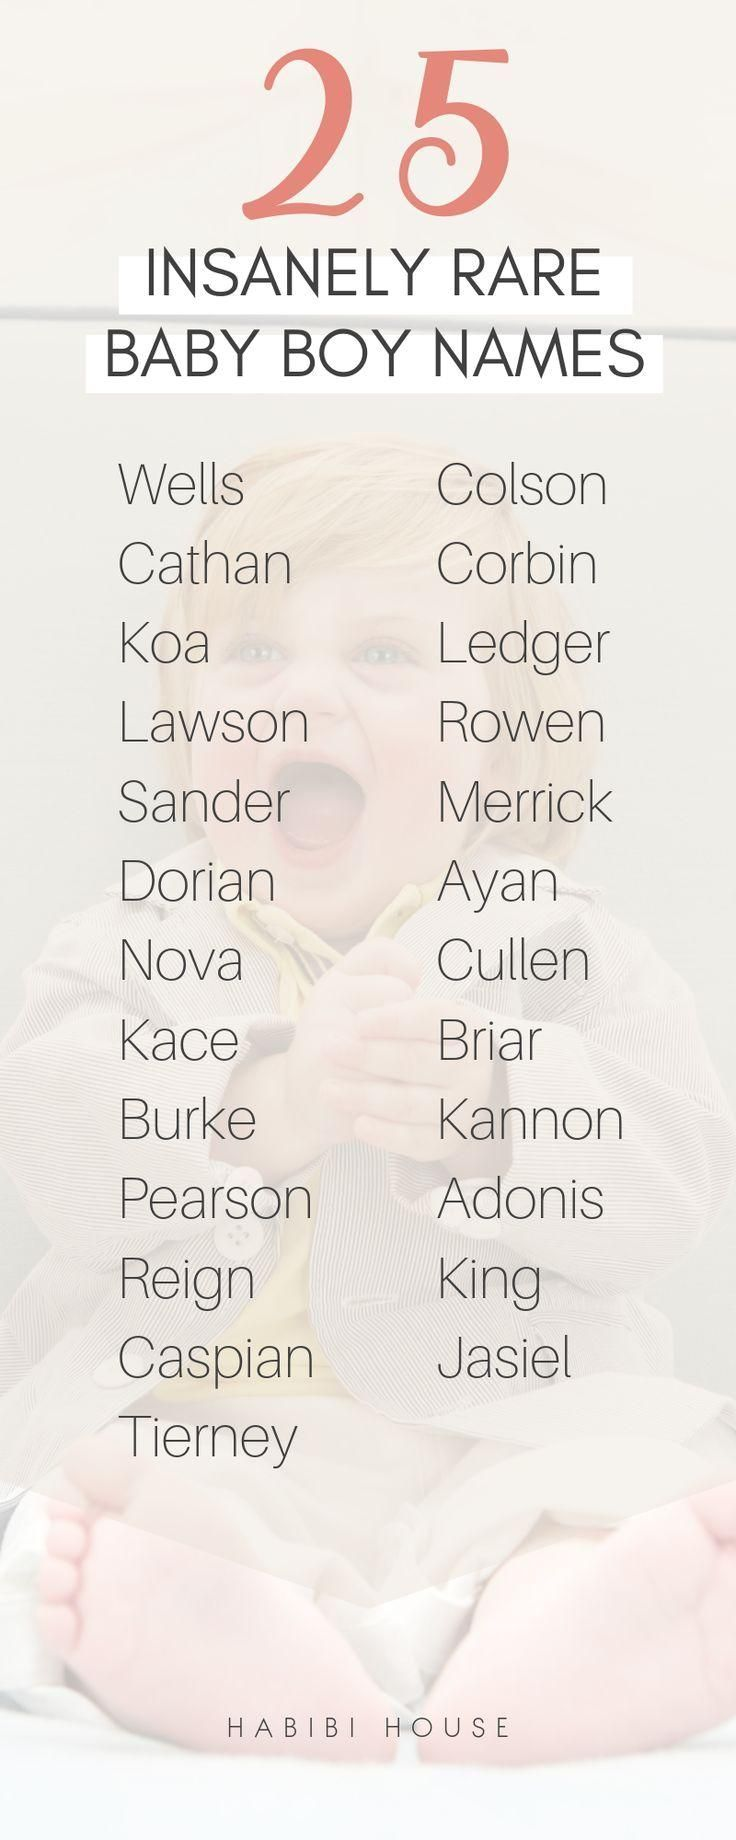 Baby Boy Names With Th : names, Insanely, Names!, Names, Instantly, (well,, Th…, Southern, Names,